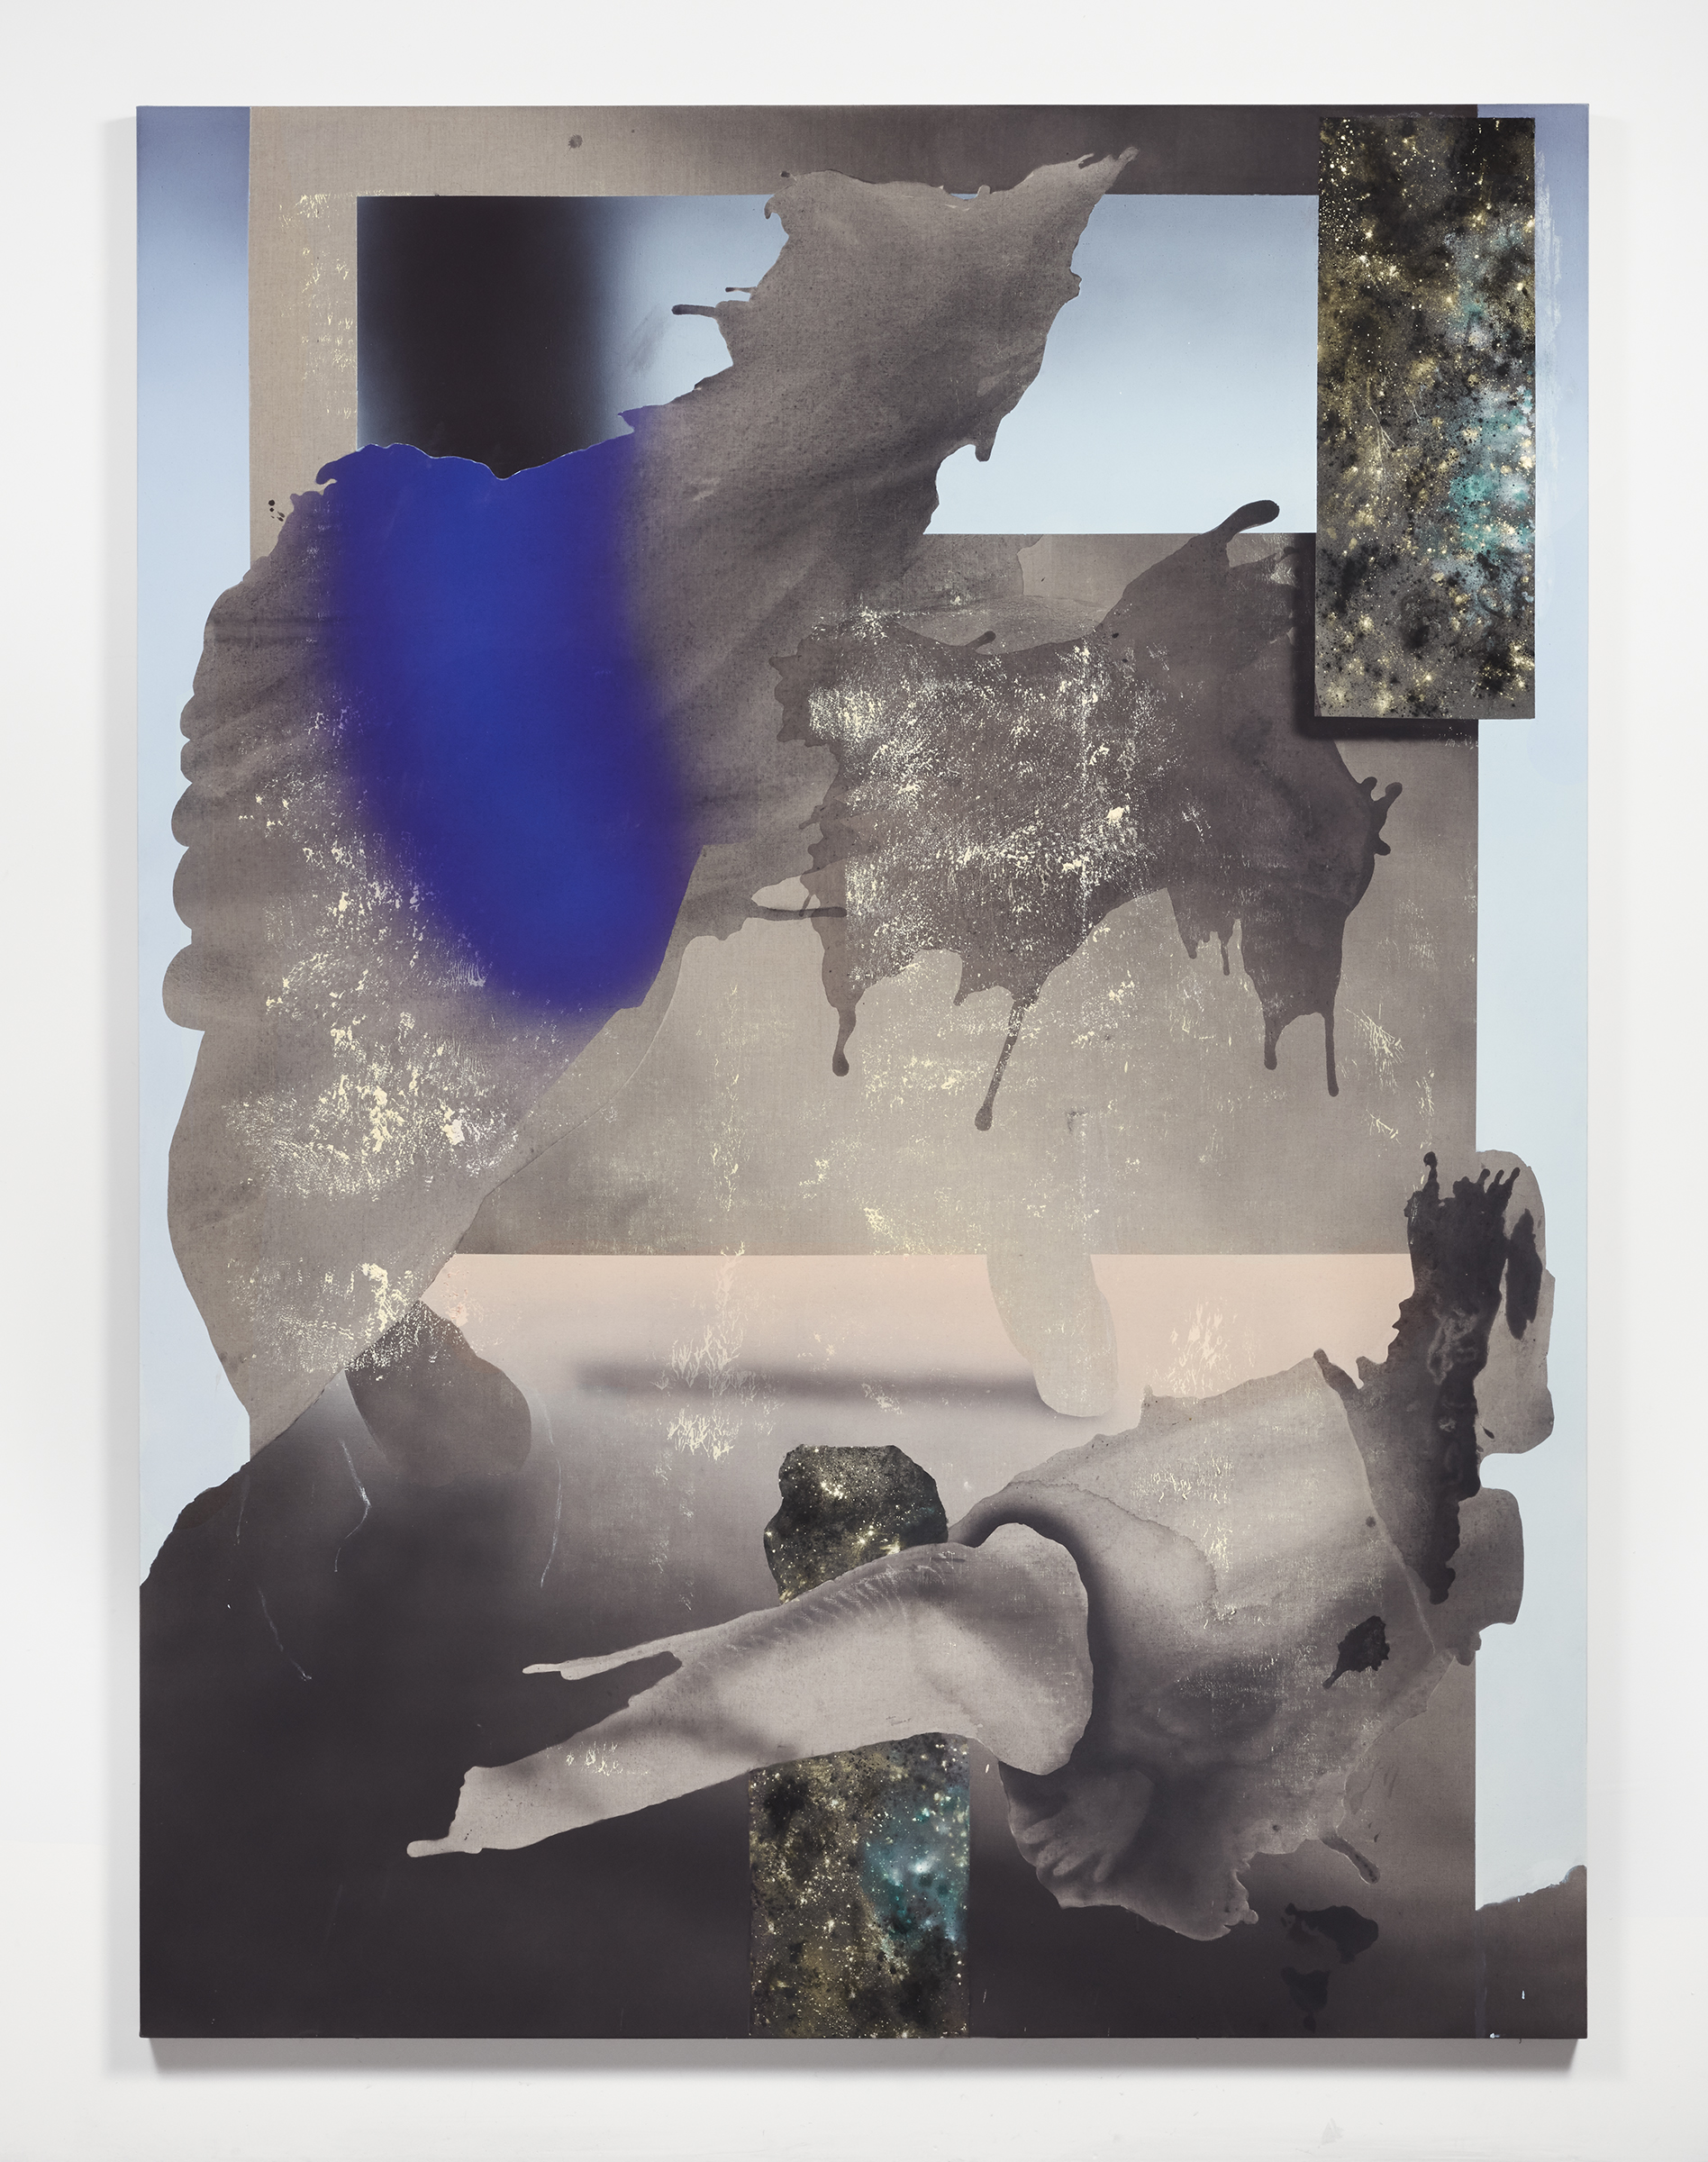 Impossible Light , Flashe, mica, acrylic, and charcoal on linen, 96 x 72 inches, 2017